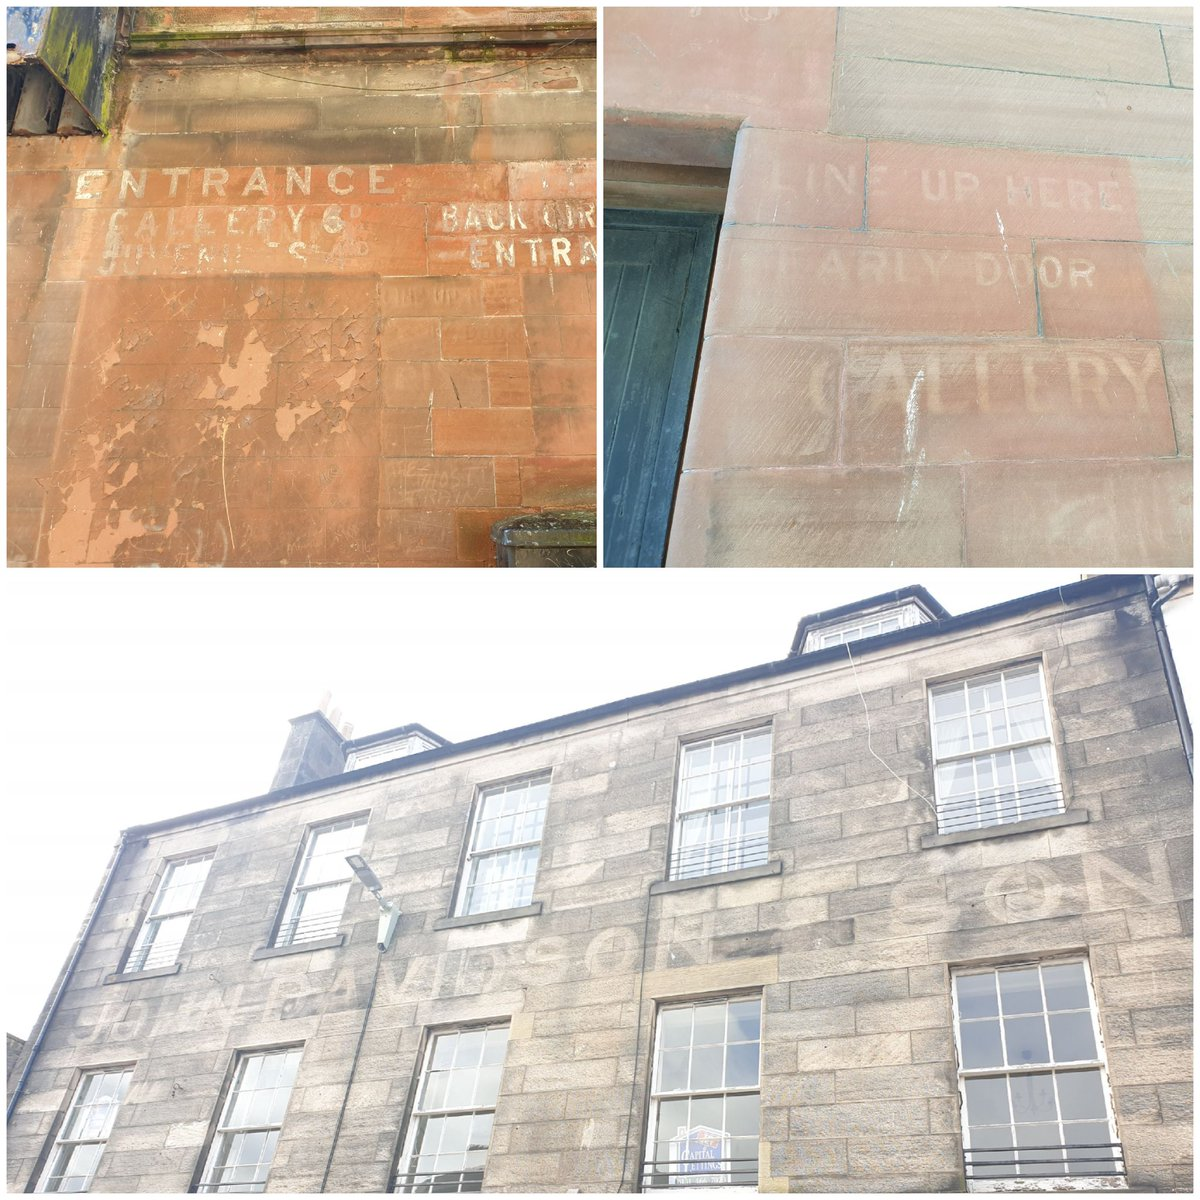 Spent a lovely morning #Kirkcaldy looking at sites for various projects, discovered some #ghostsigns along the way #towncentres #heritage #people #place #communitypic.twitter.com/AIyR82jNYS